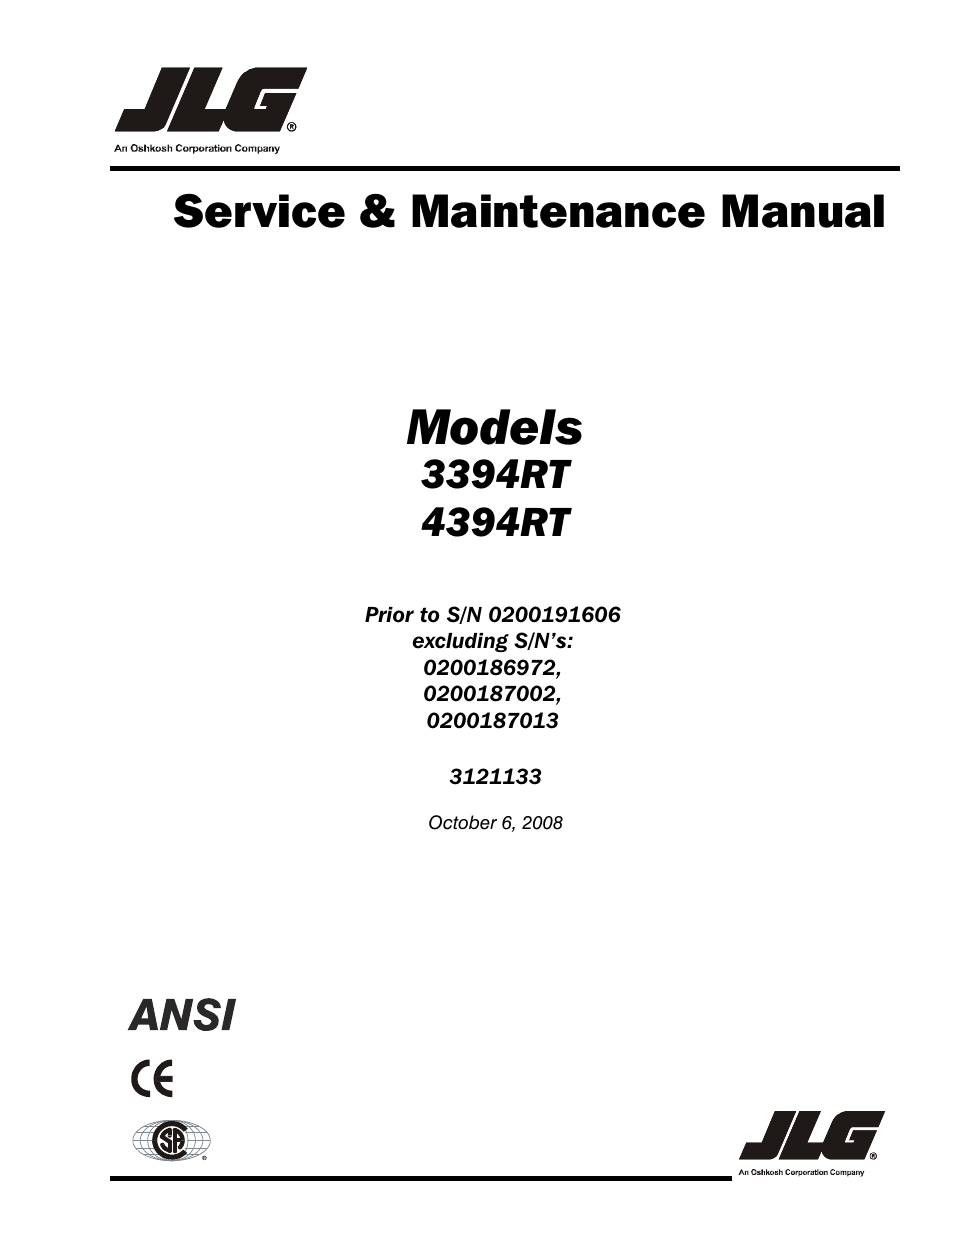 JLG 4394RT Service Manual User Manual   228 pages   Also for: 3394RT  Service Manual